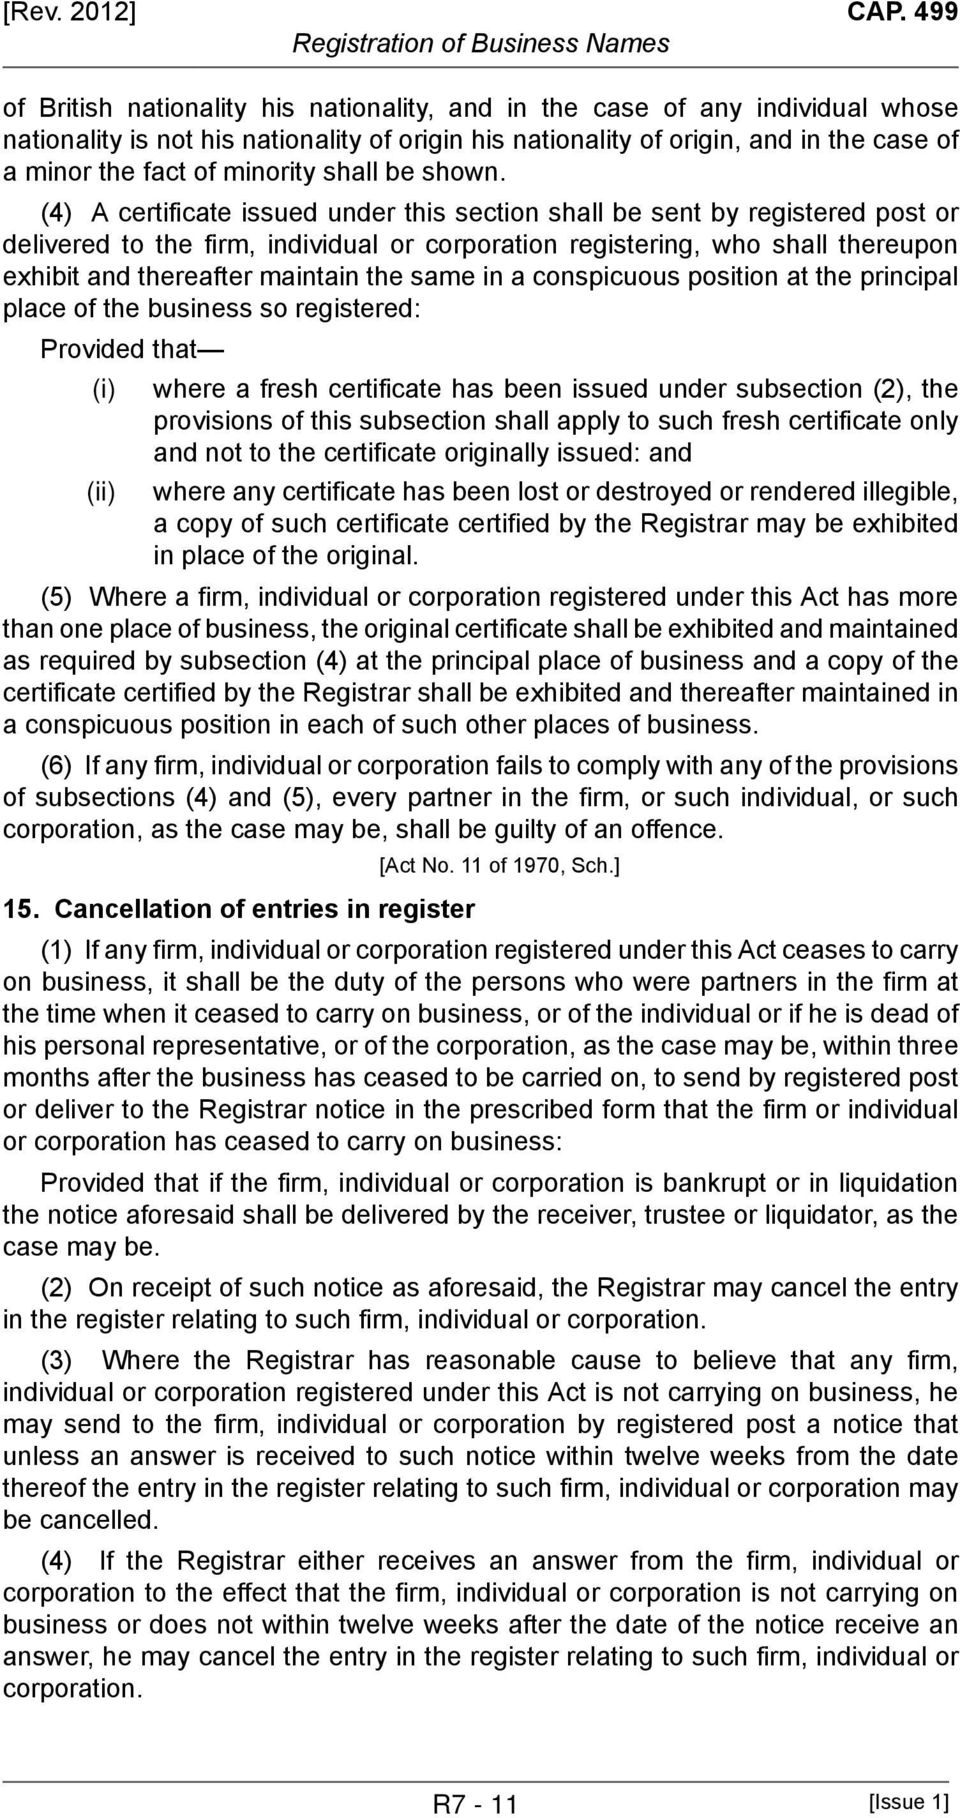 (4) A certificate issued under this section shall be sent by registered post or delivered to the firm, individual or corporation registering, who shall thereupon exhibit and thereafter maintain the